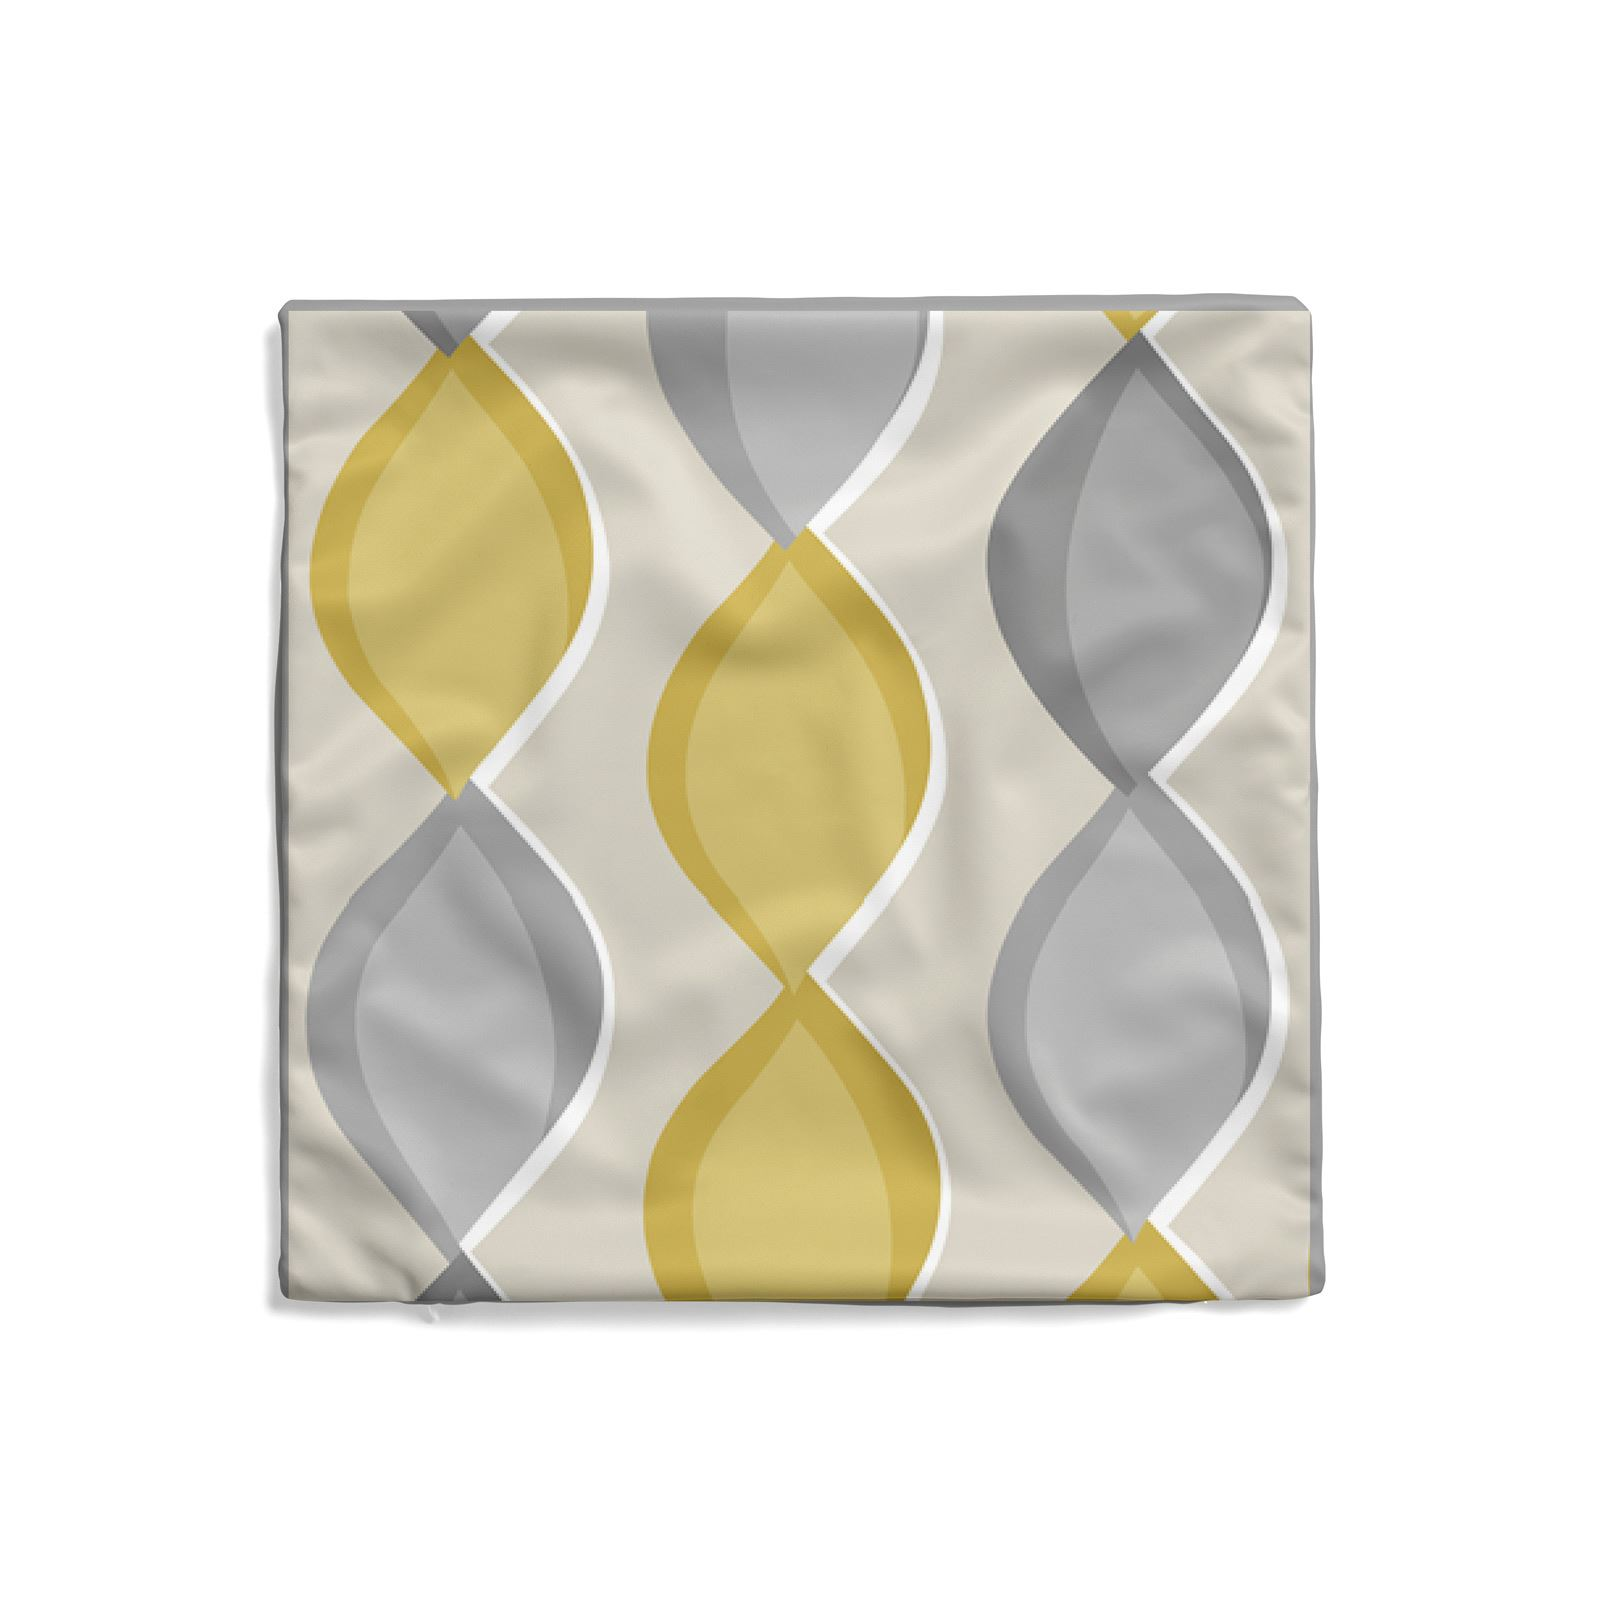 Grey-Ochre-Mustard-Cushion-Cover-Collection-17-034-18-034-Covers-Filled-Cushions thumbnail 82